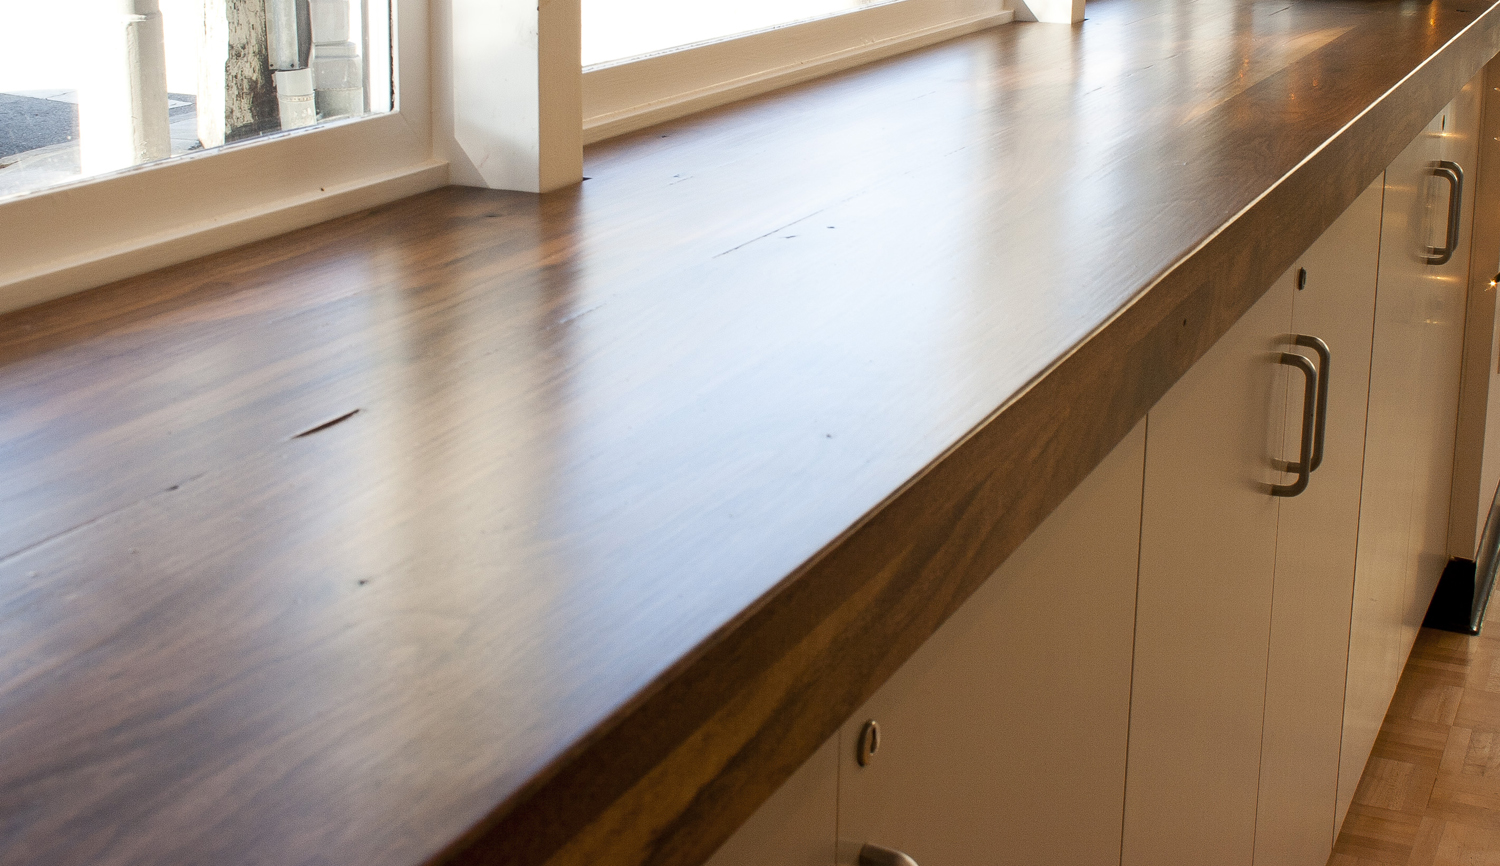 ... the pre-existing window sills. Also three solid walnut wall shelves